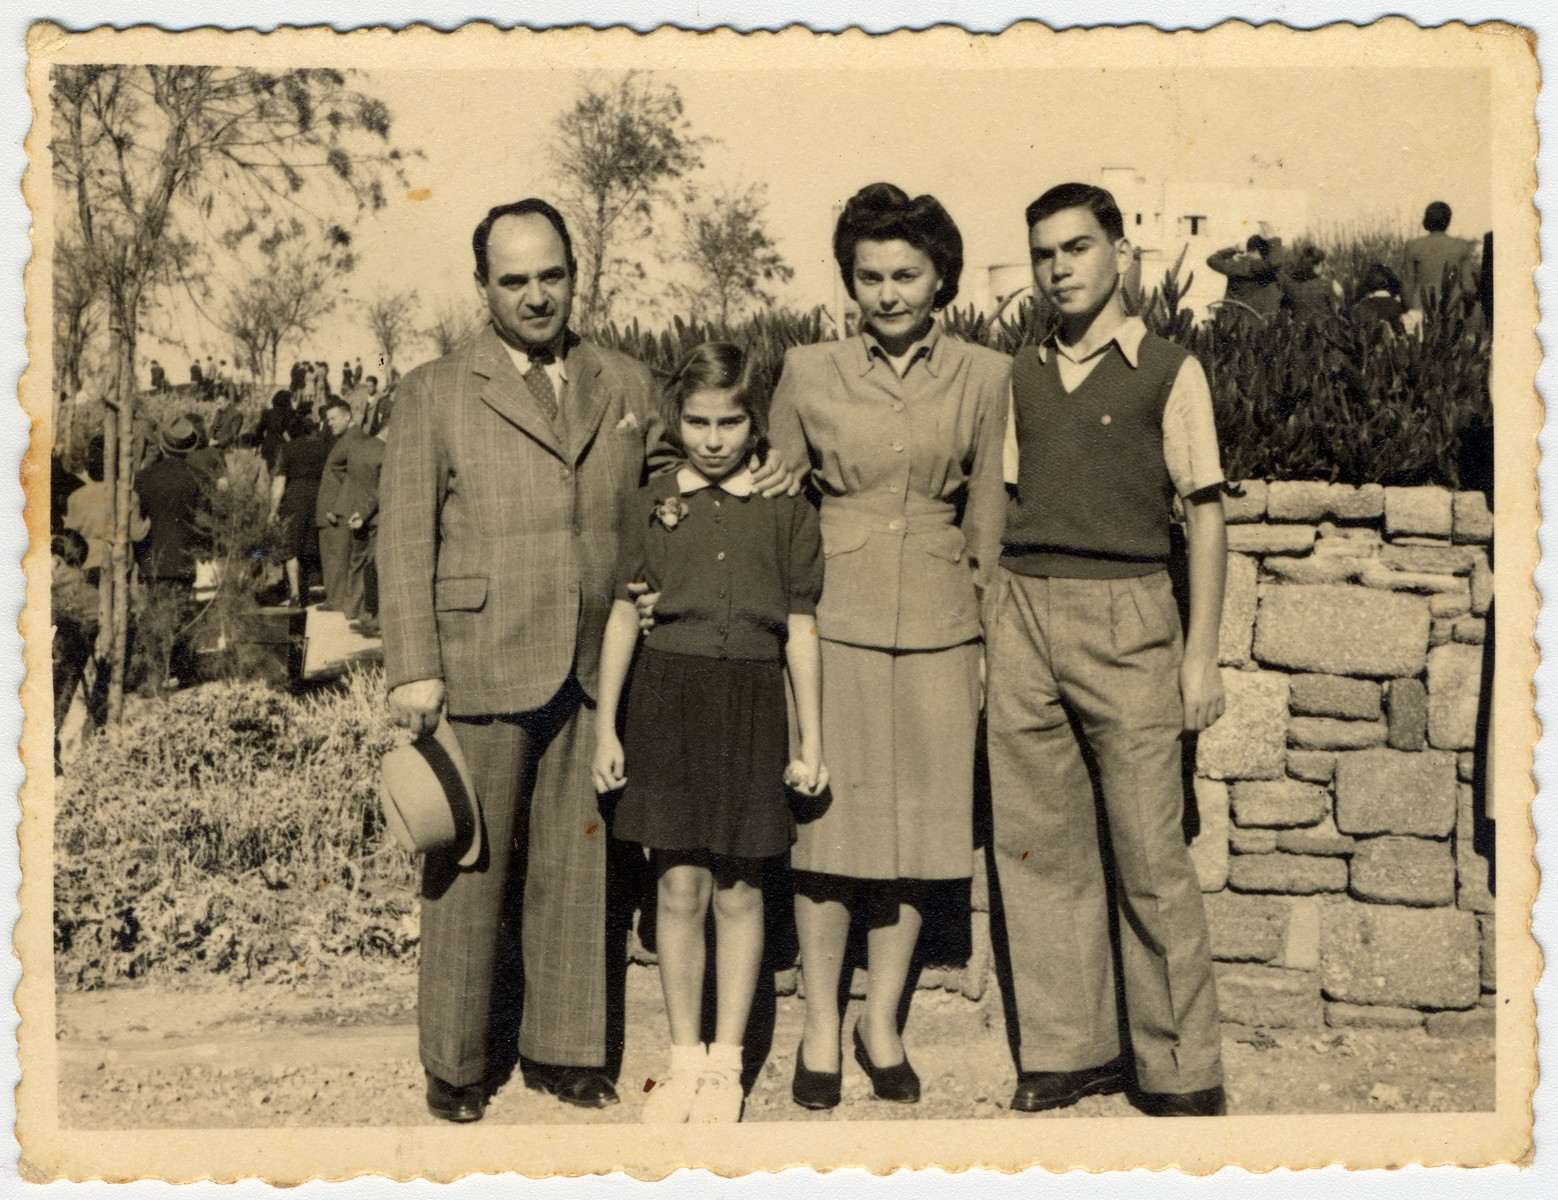 The Menn family poses by a stone wall in Tel Aviv where they settled after escaping from Lithuania.  Pictured from left to right are David, Bella, Regina and Julius Menn.